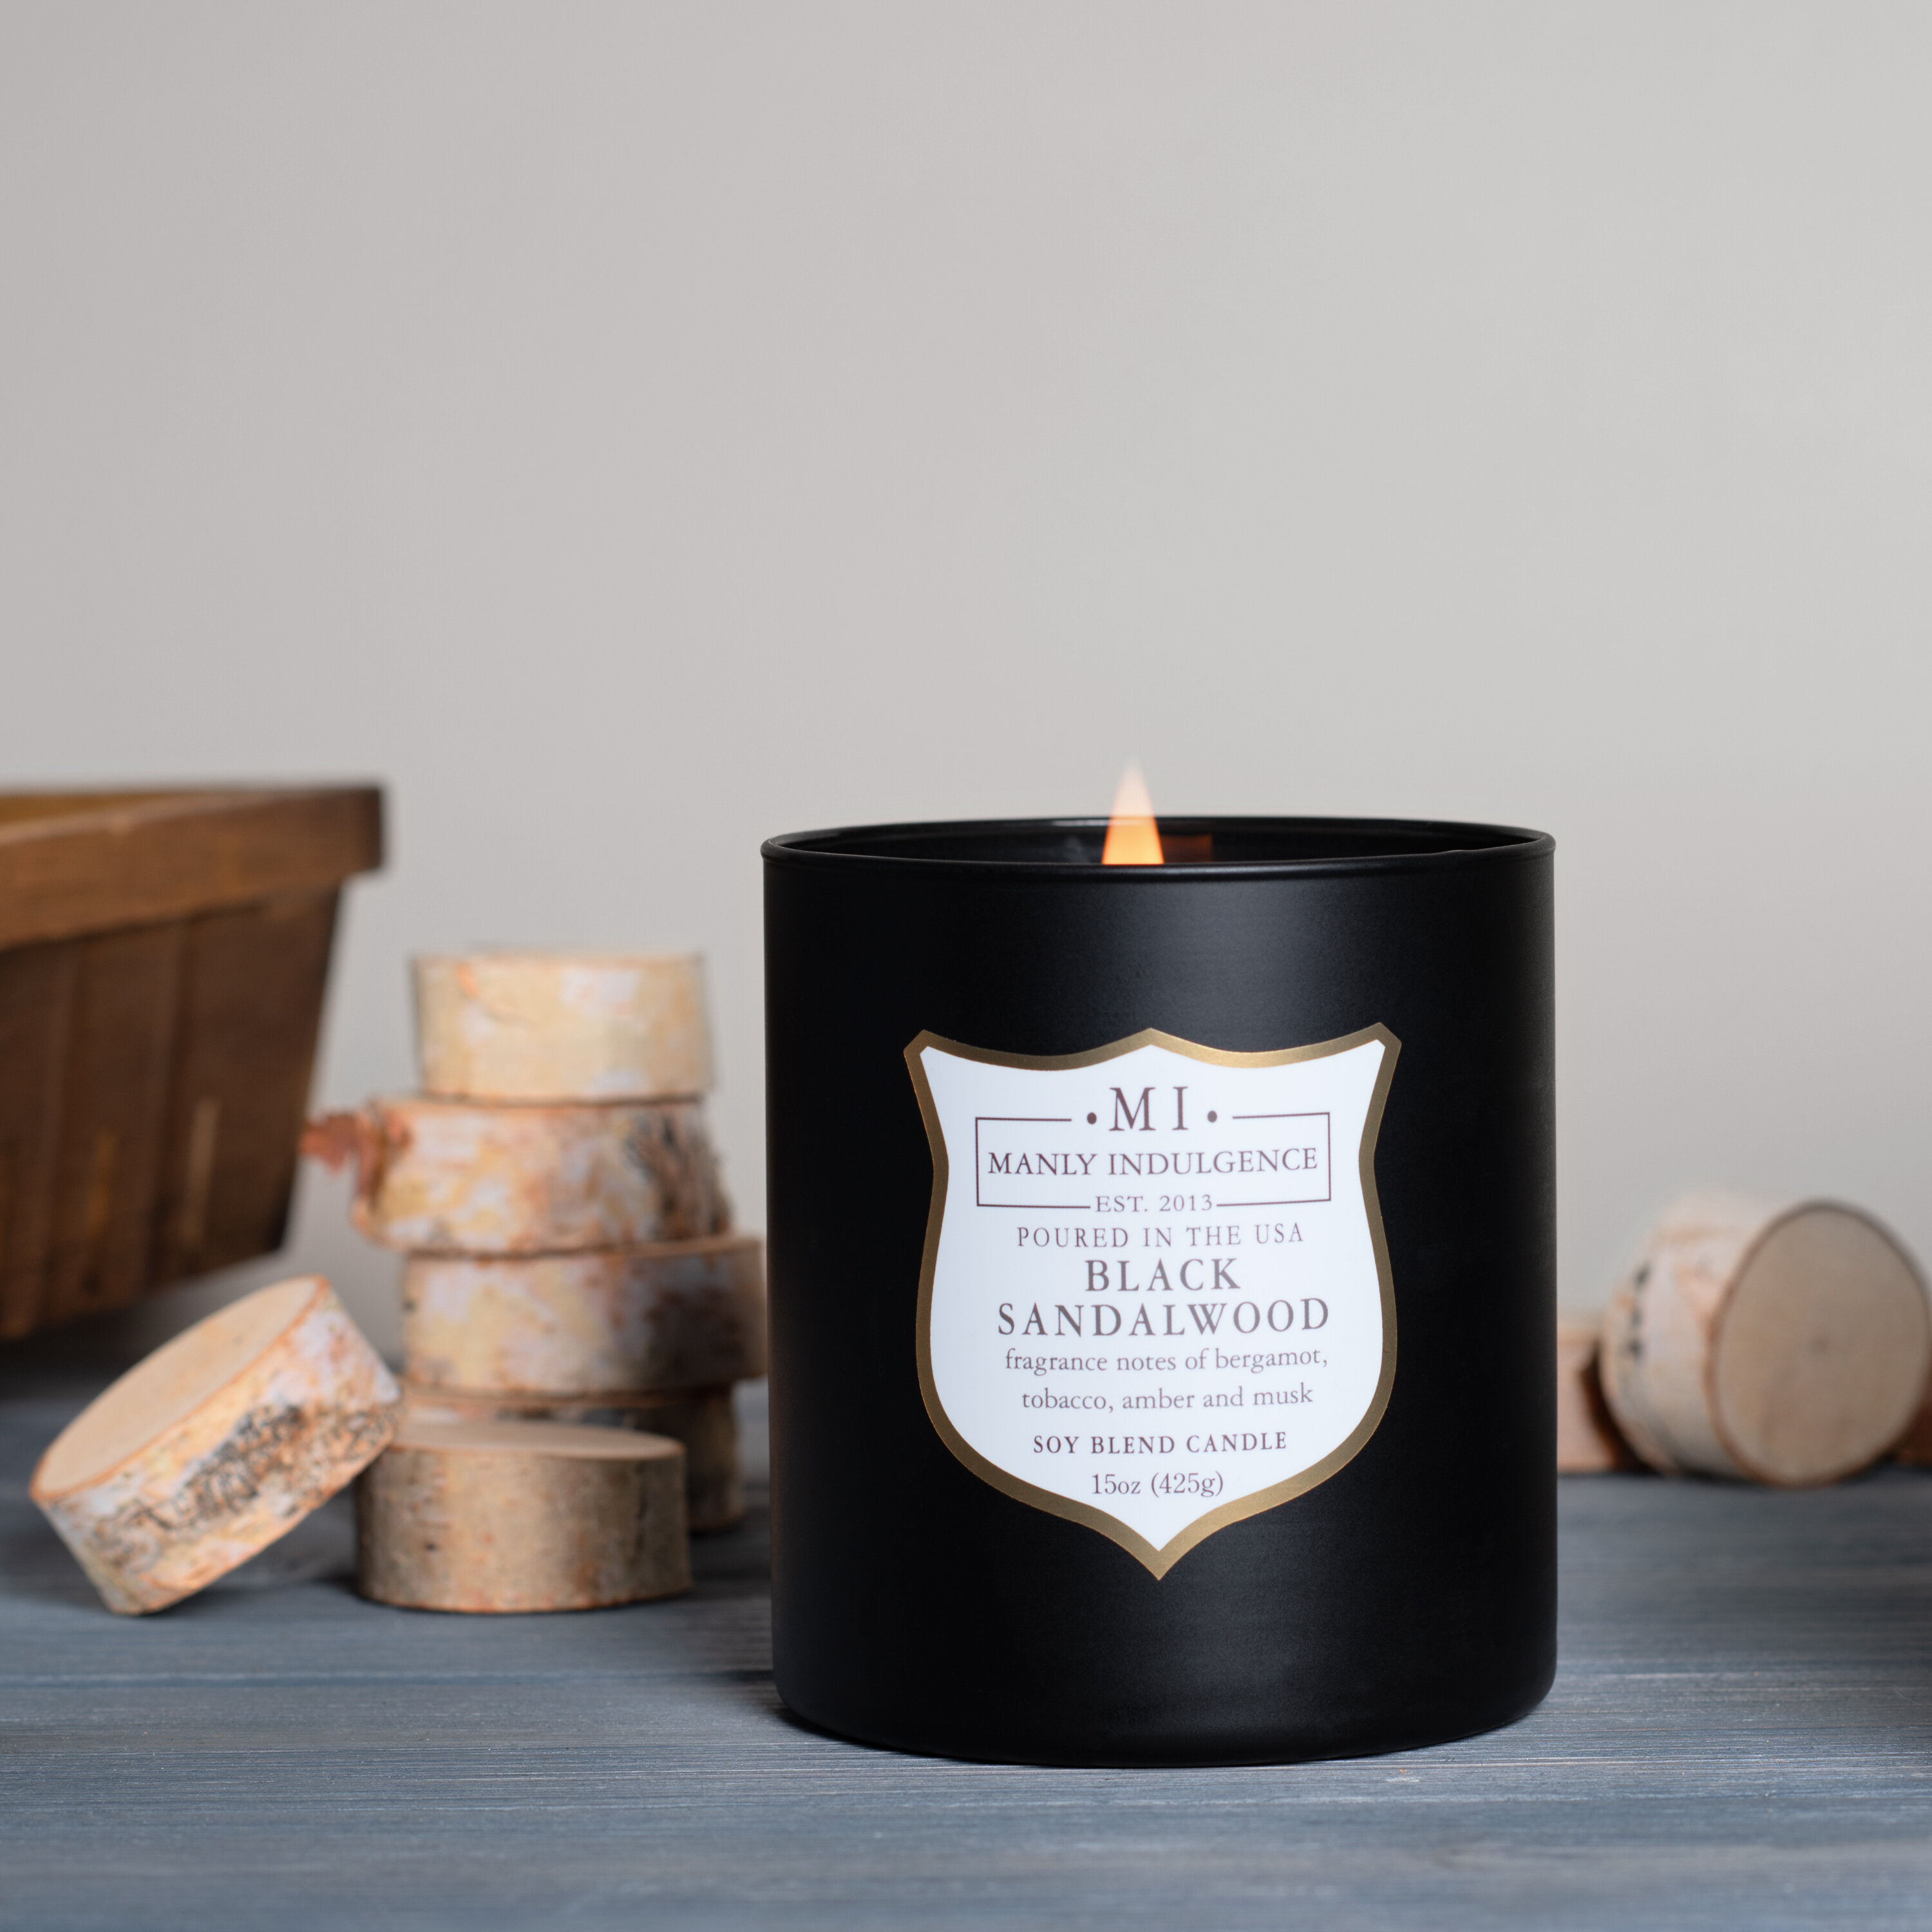 Hand Poured in London Red Candle Natural Candle Soy  Wax Scented Candle Soy Candle Gift Rose /& Oud Soy Wax Candle Vegan Candle